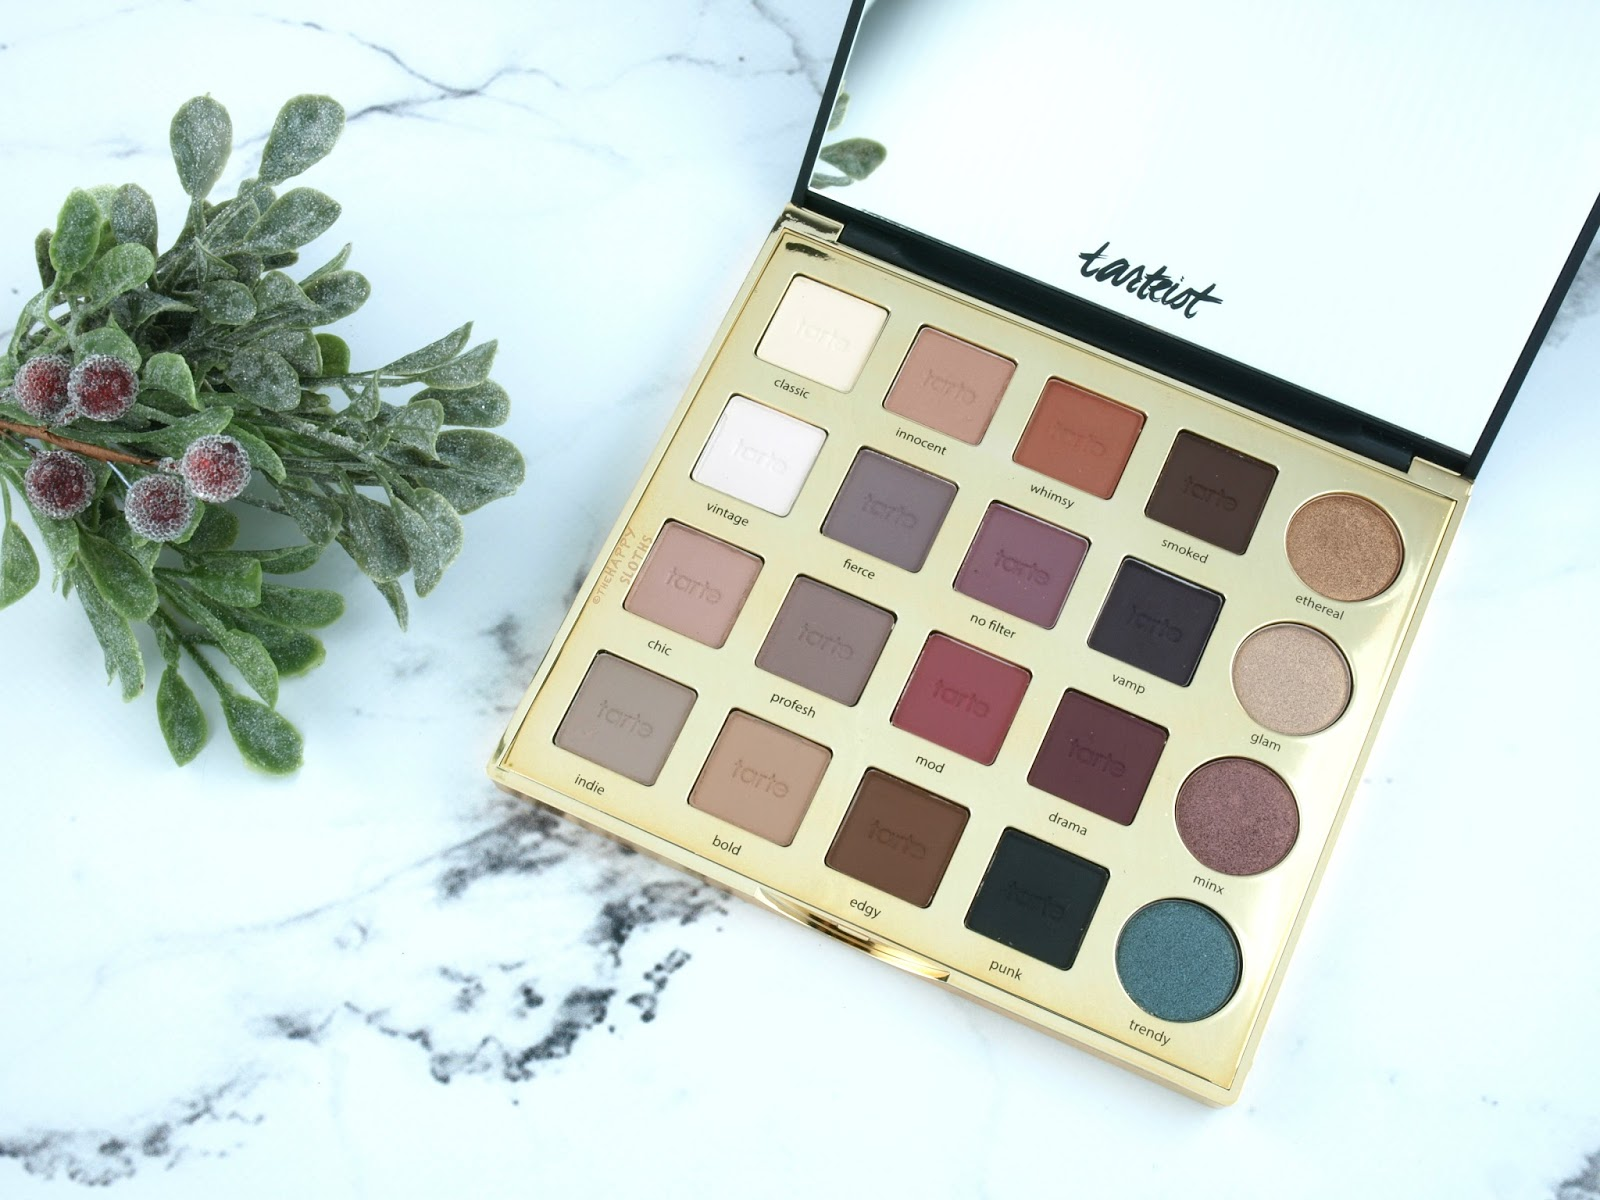 Tarte Tartiest PRO Amazonian Clay Palette: Review and Swatches